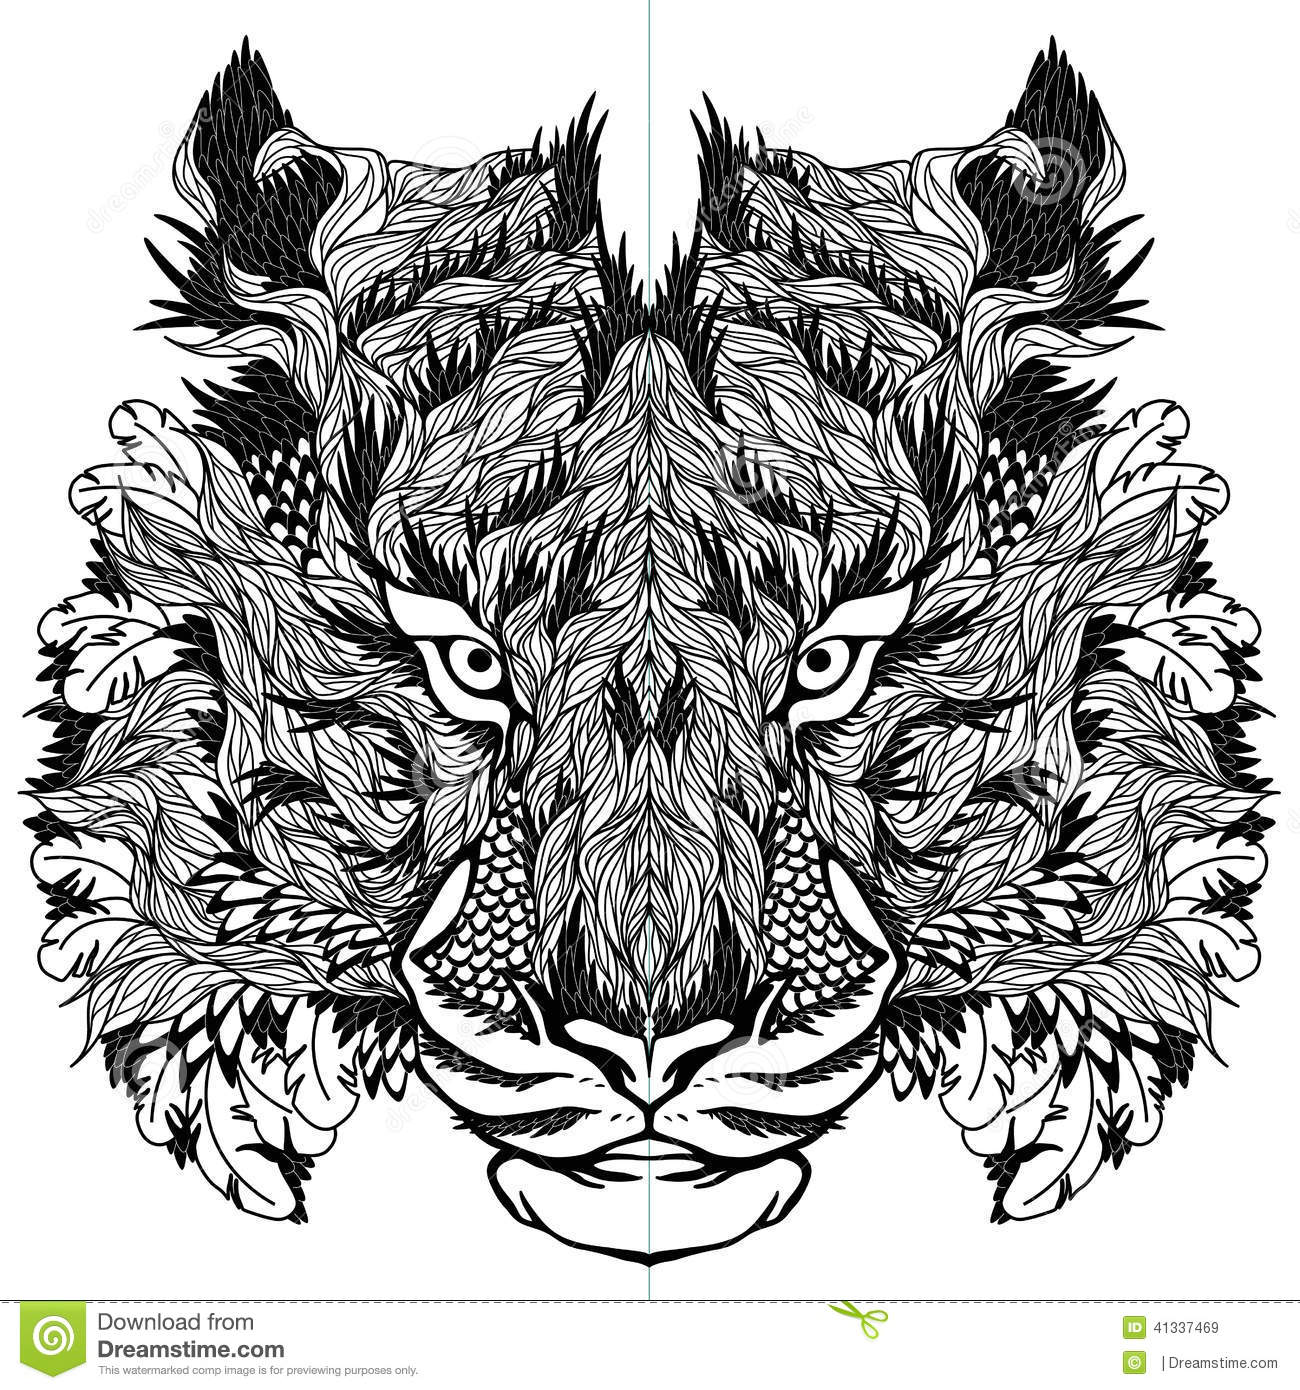 Psychedelic tiger tattoo - photo#4